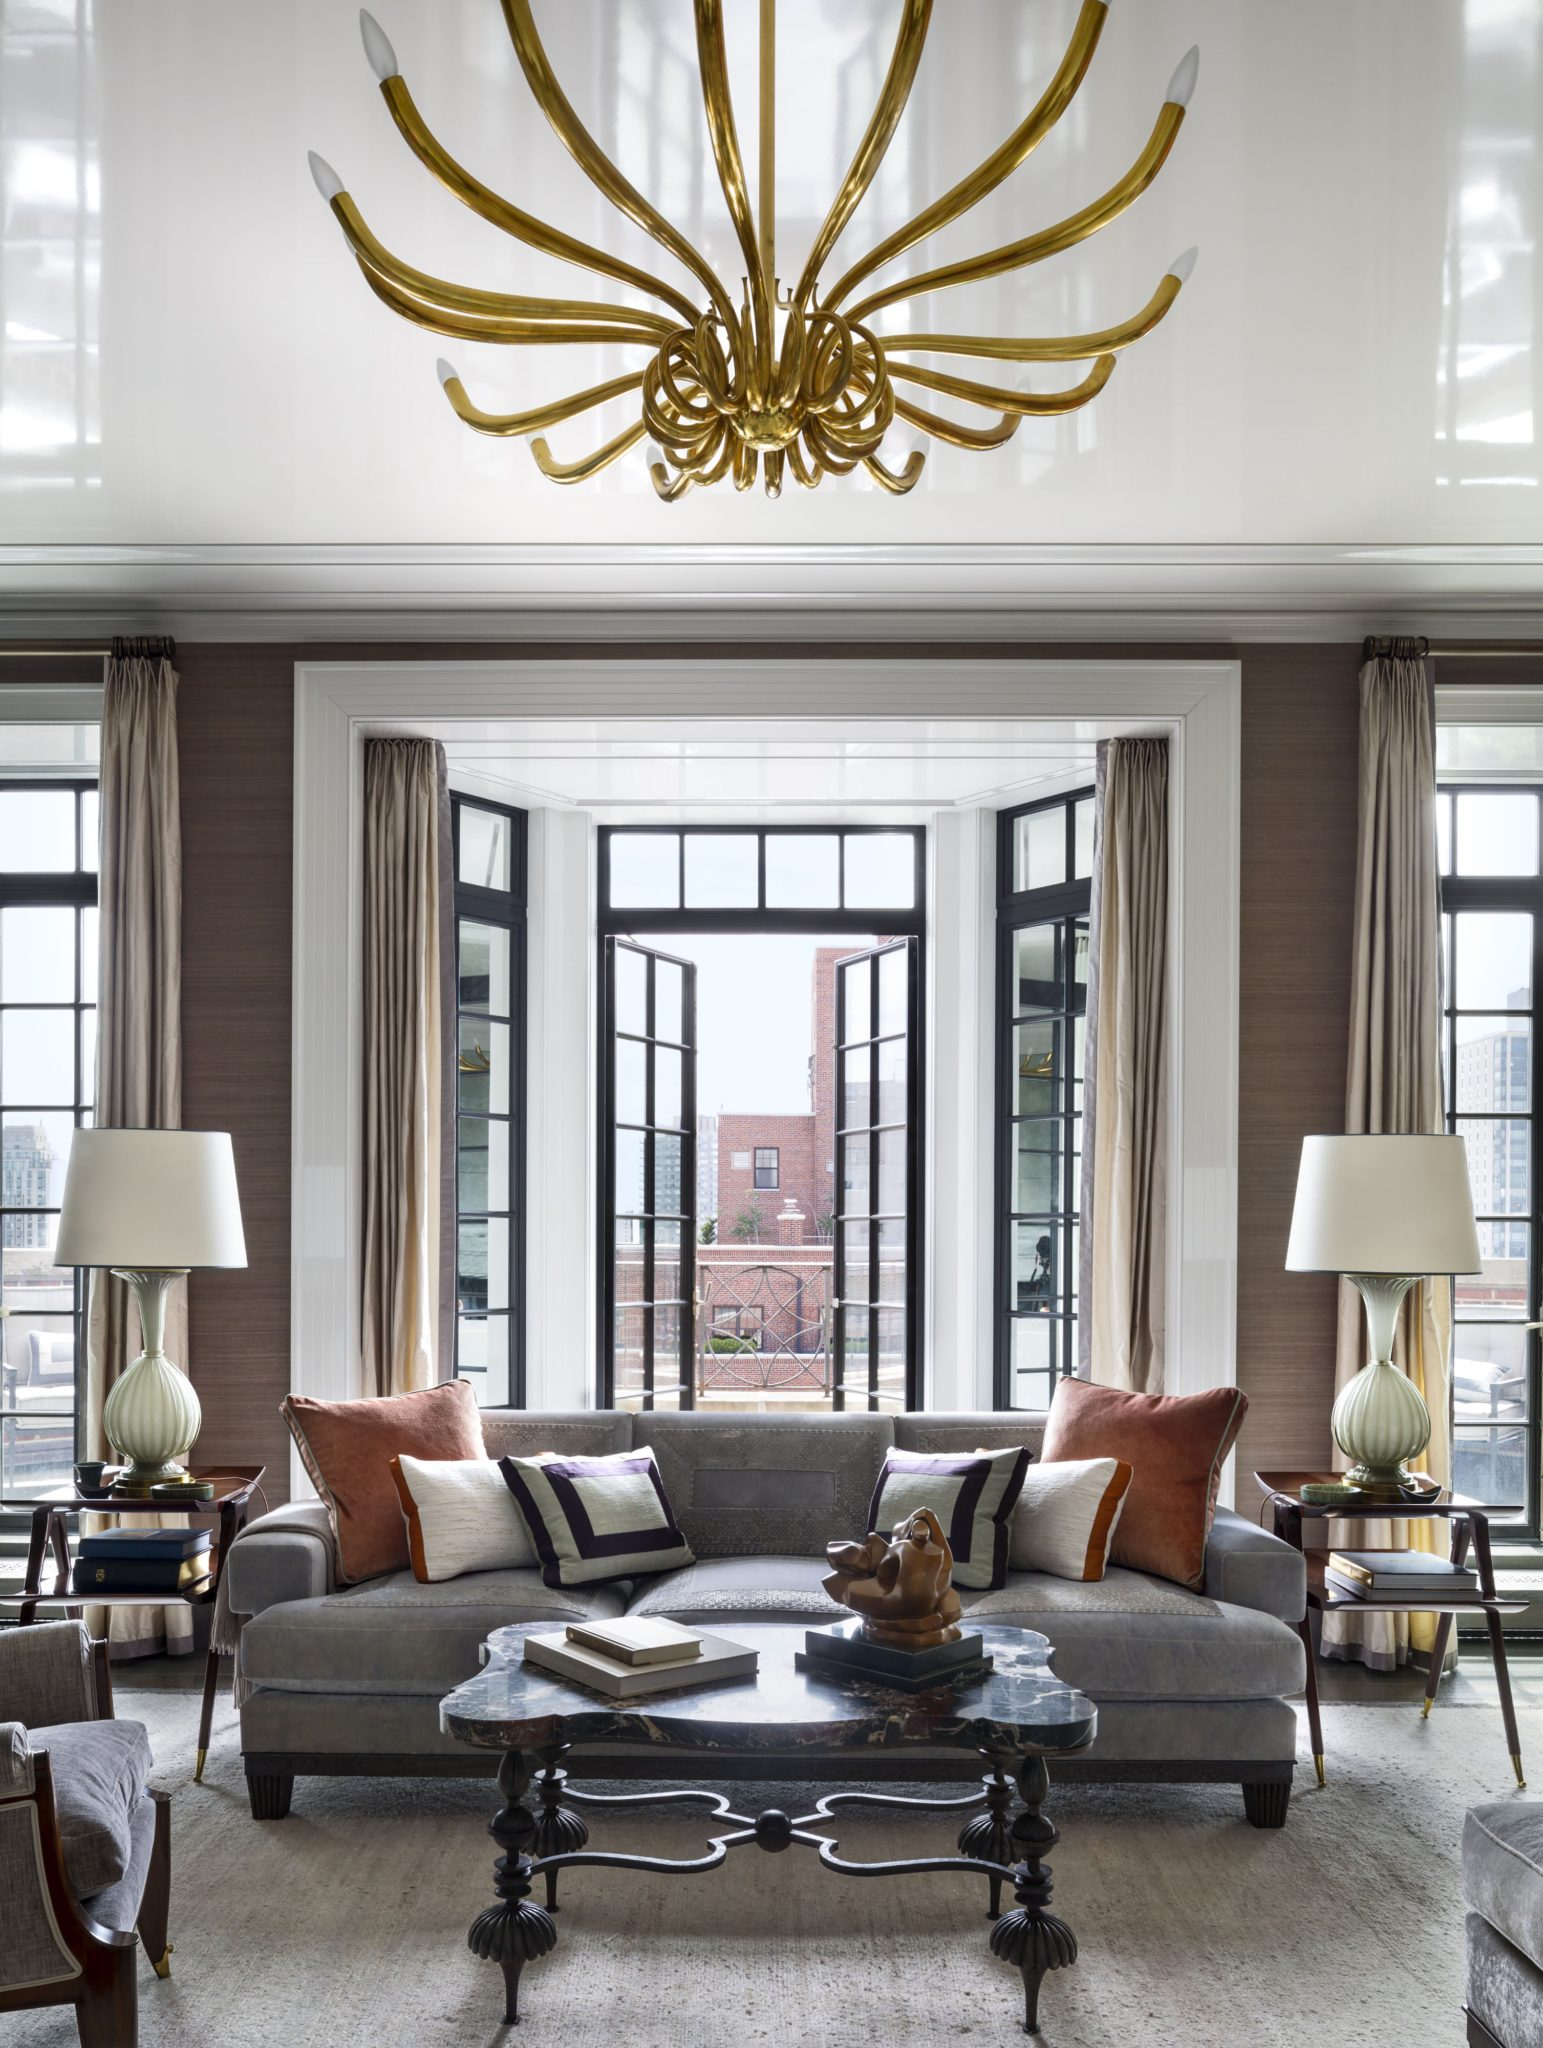 New French doors are flanked by mirrored sidelights. The sofa was custom made by Dune,the cocktail table is by Gilbert Poillerat and Serge Roche—purchased at auction—and the vintage chandelier is from H.M. Luther.